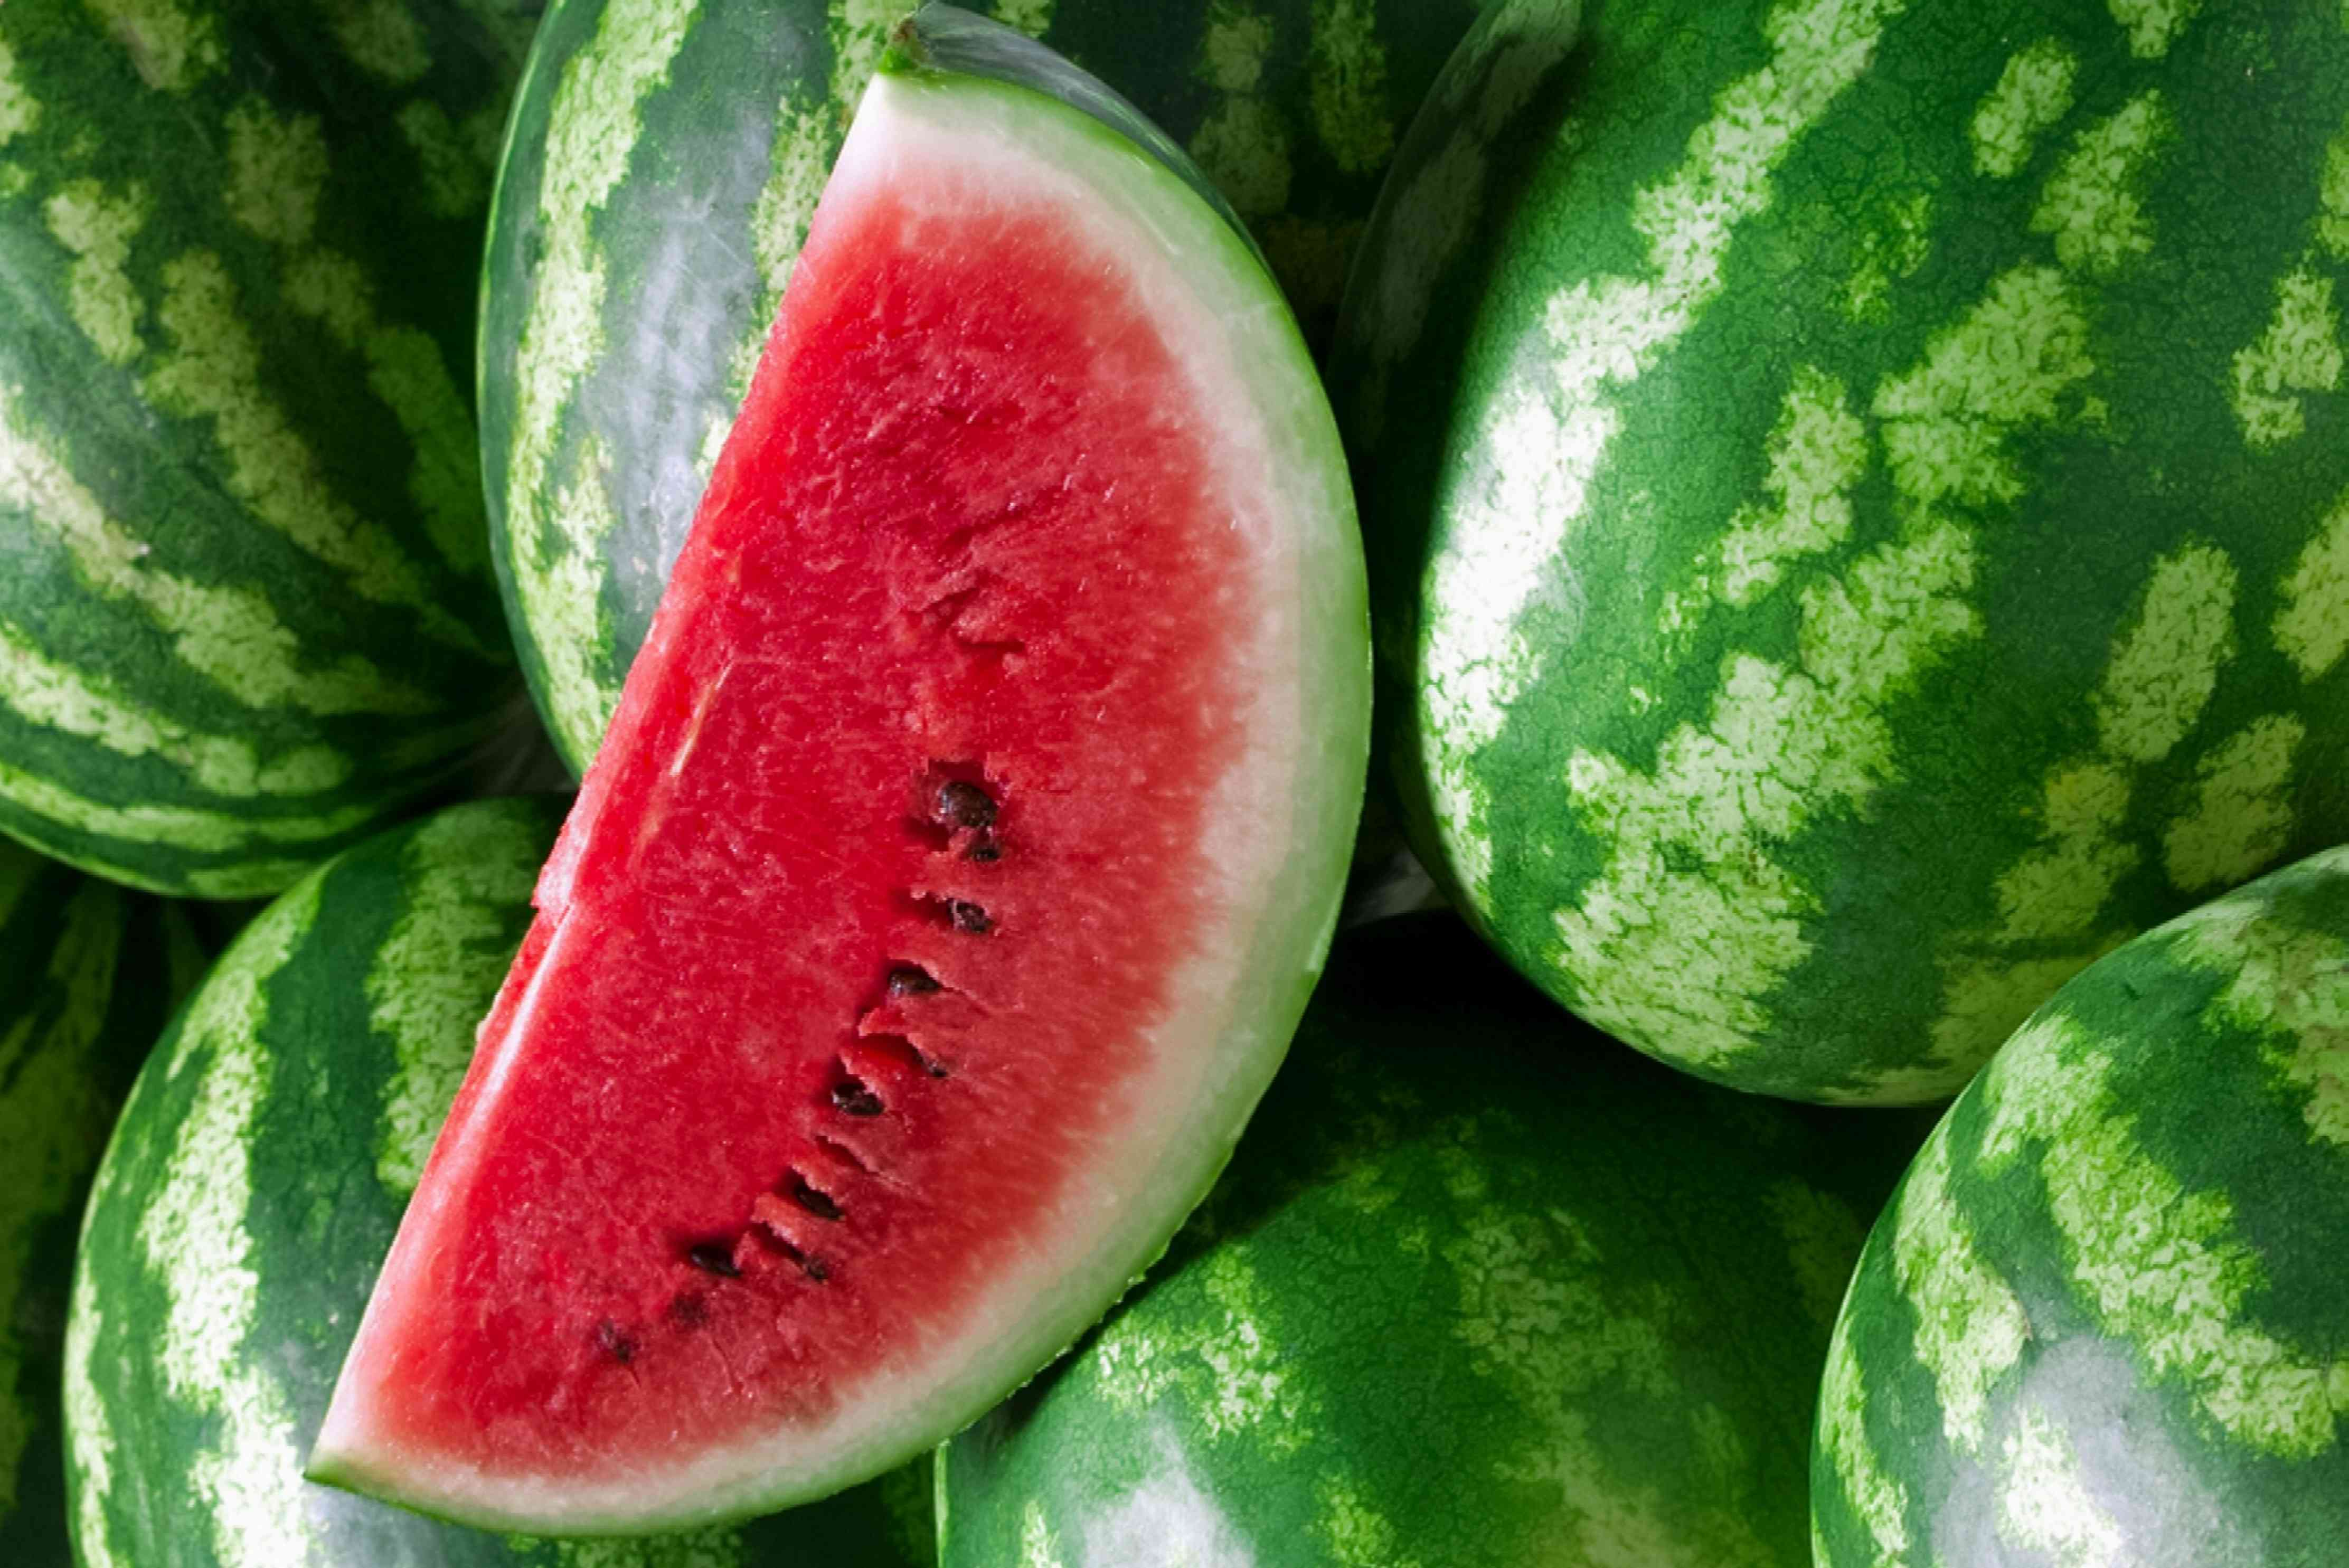 Cut slice of watermelon on a pile of whole watermelons